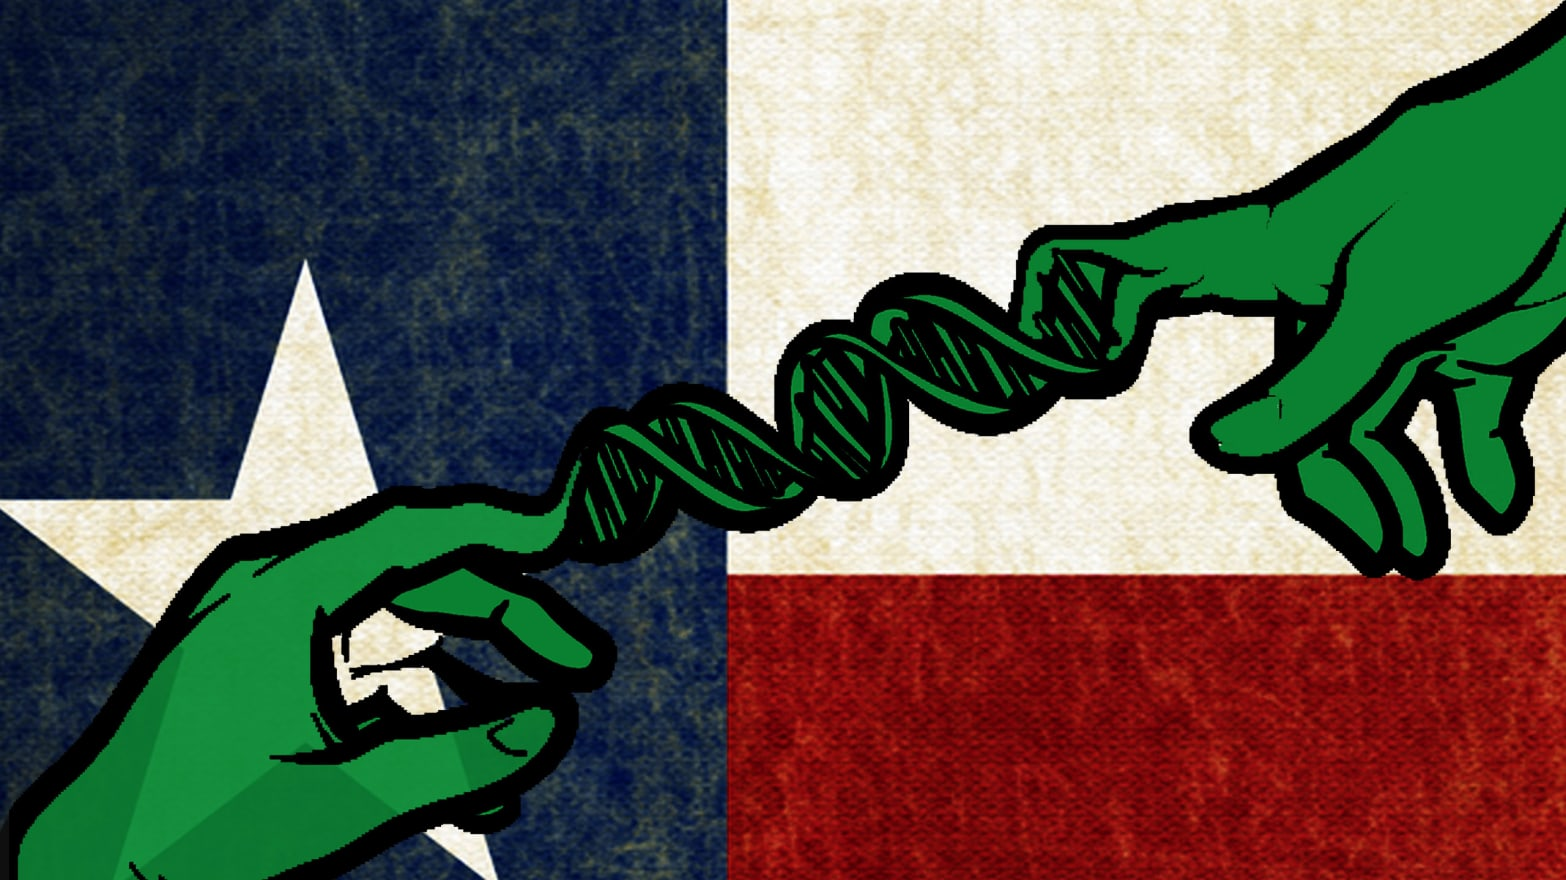 Creationism in Texas Could Go Extinct on Election Day ecdb48324e6